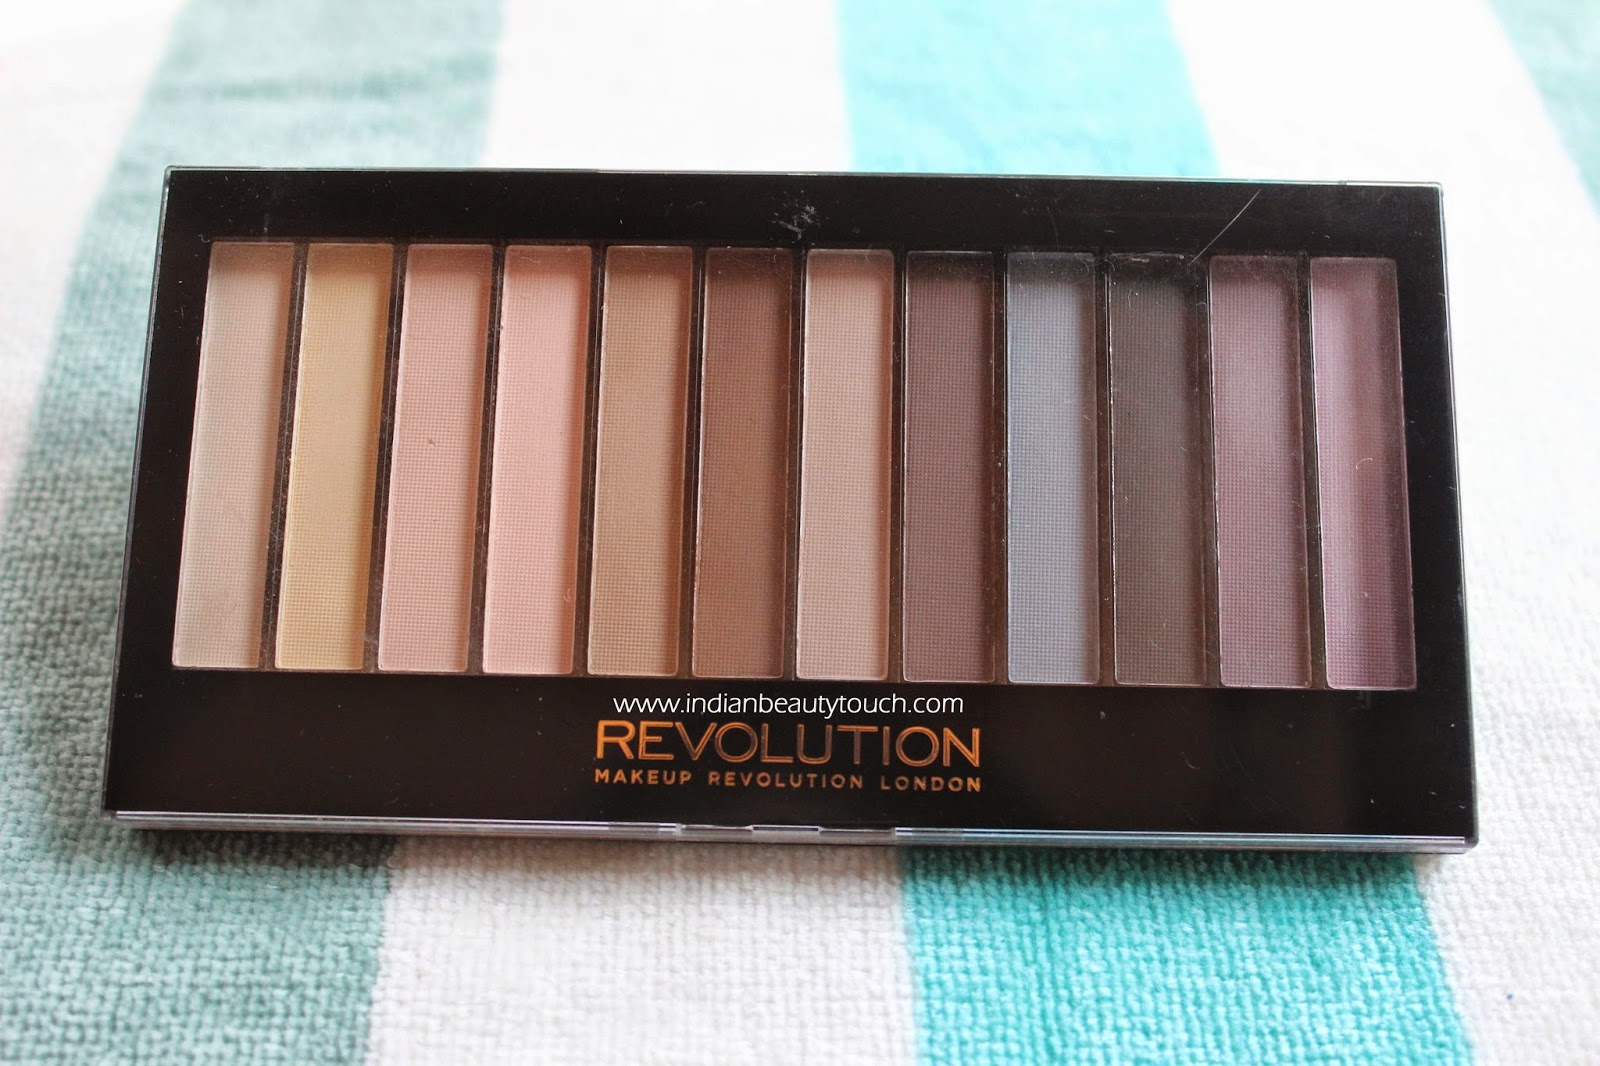 Makeup Revolution London Redemption Palette Essential Mattes Review and swatches